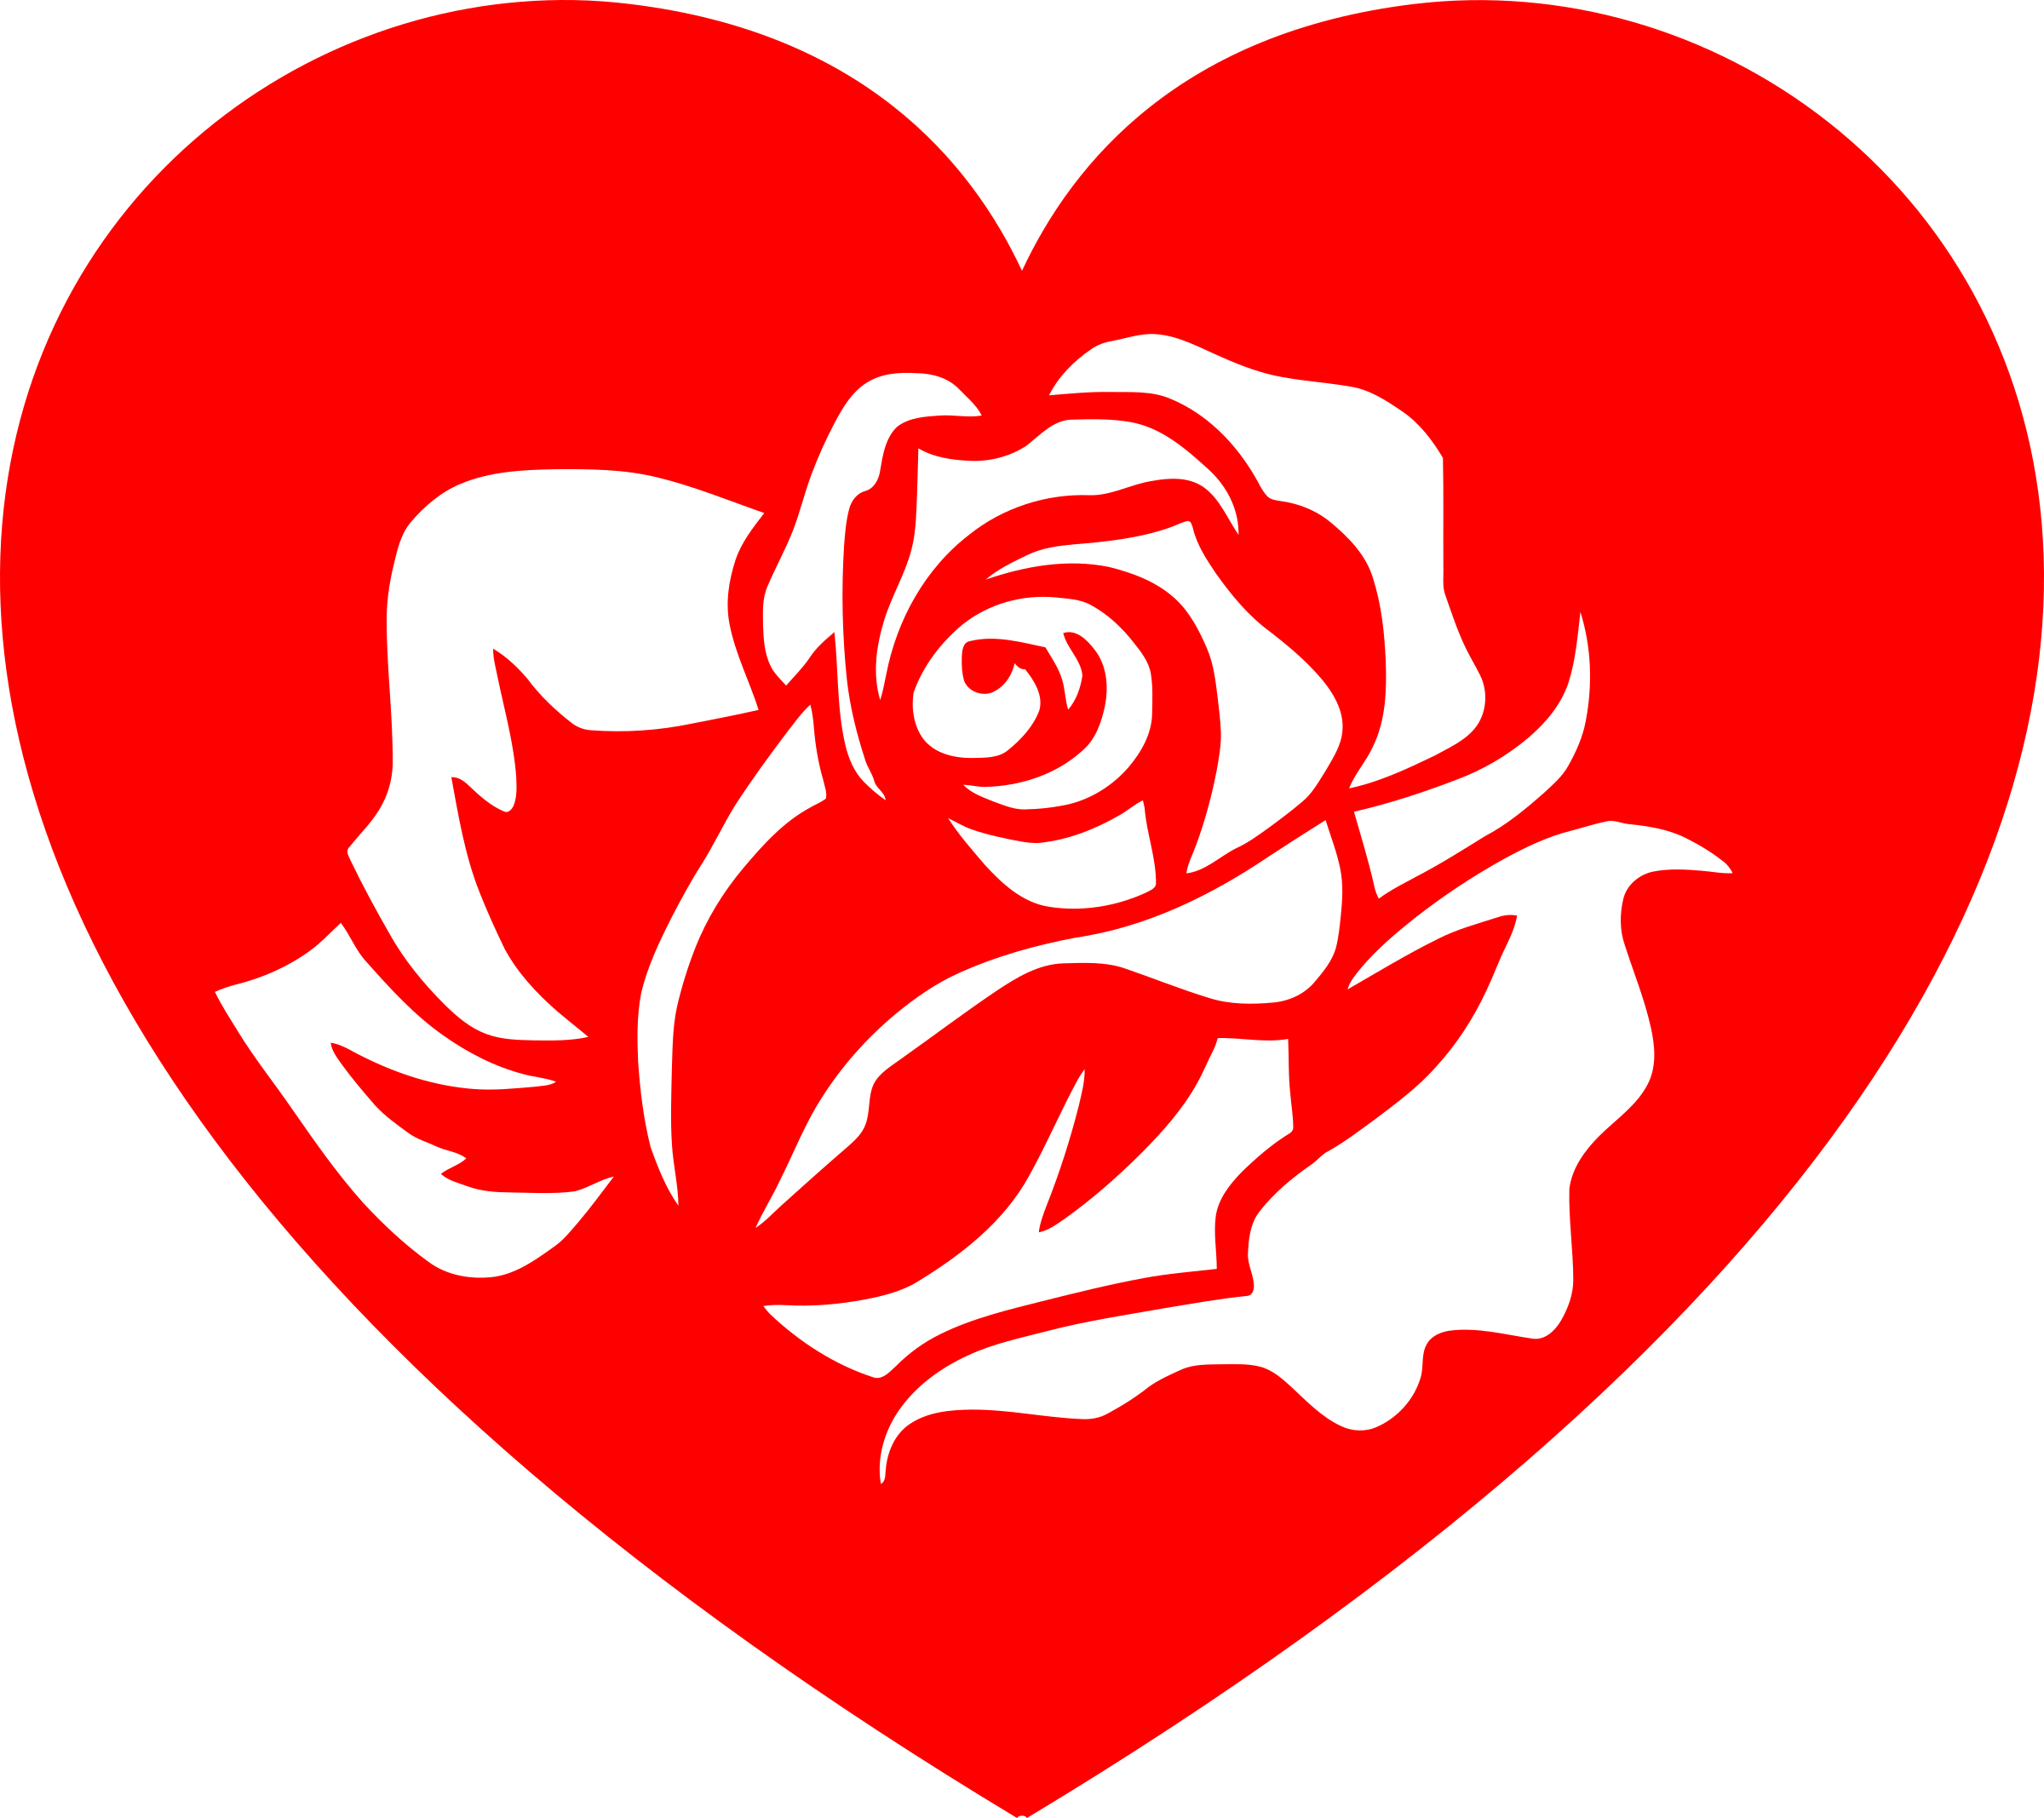 Free Rose Heart Cliparts, Download Free Clip Art, Free Clip.